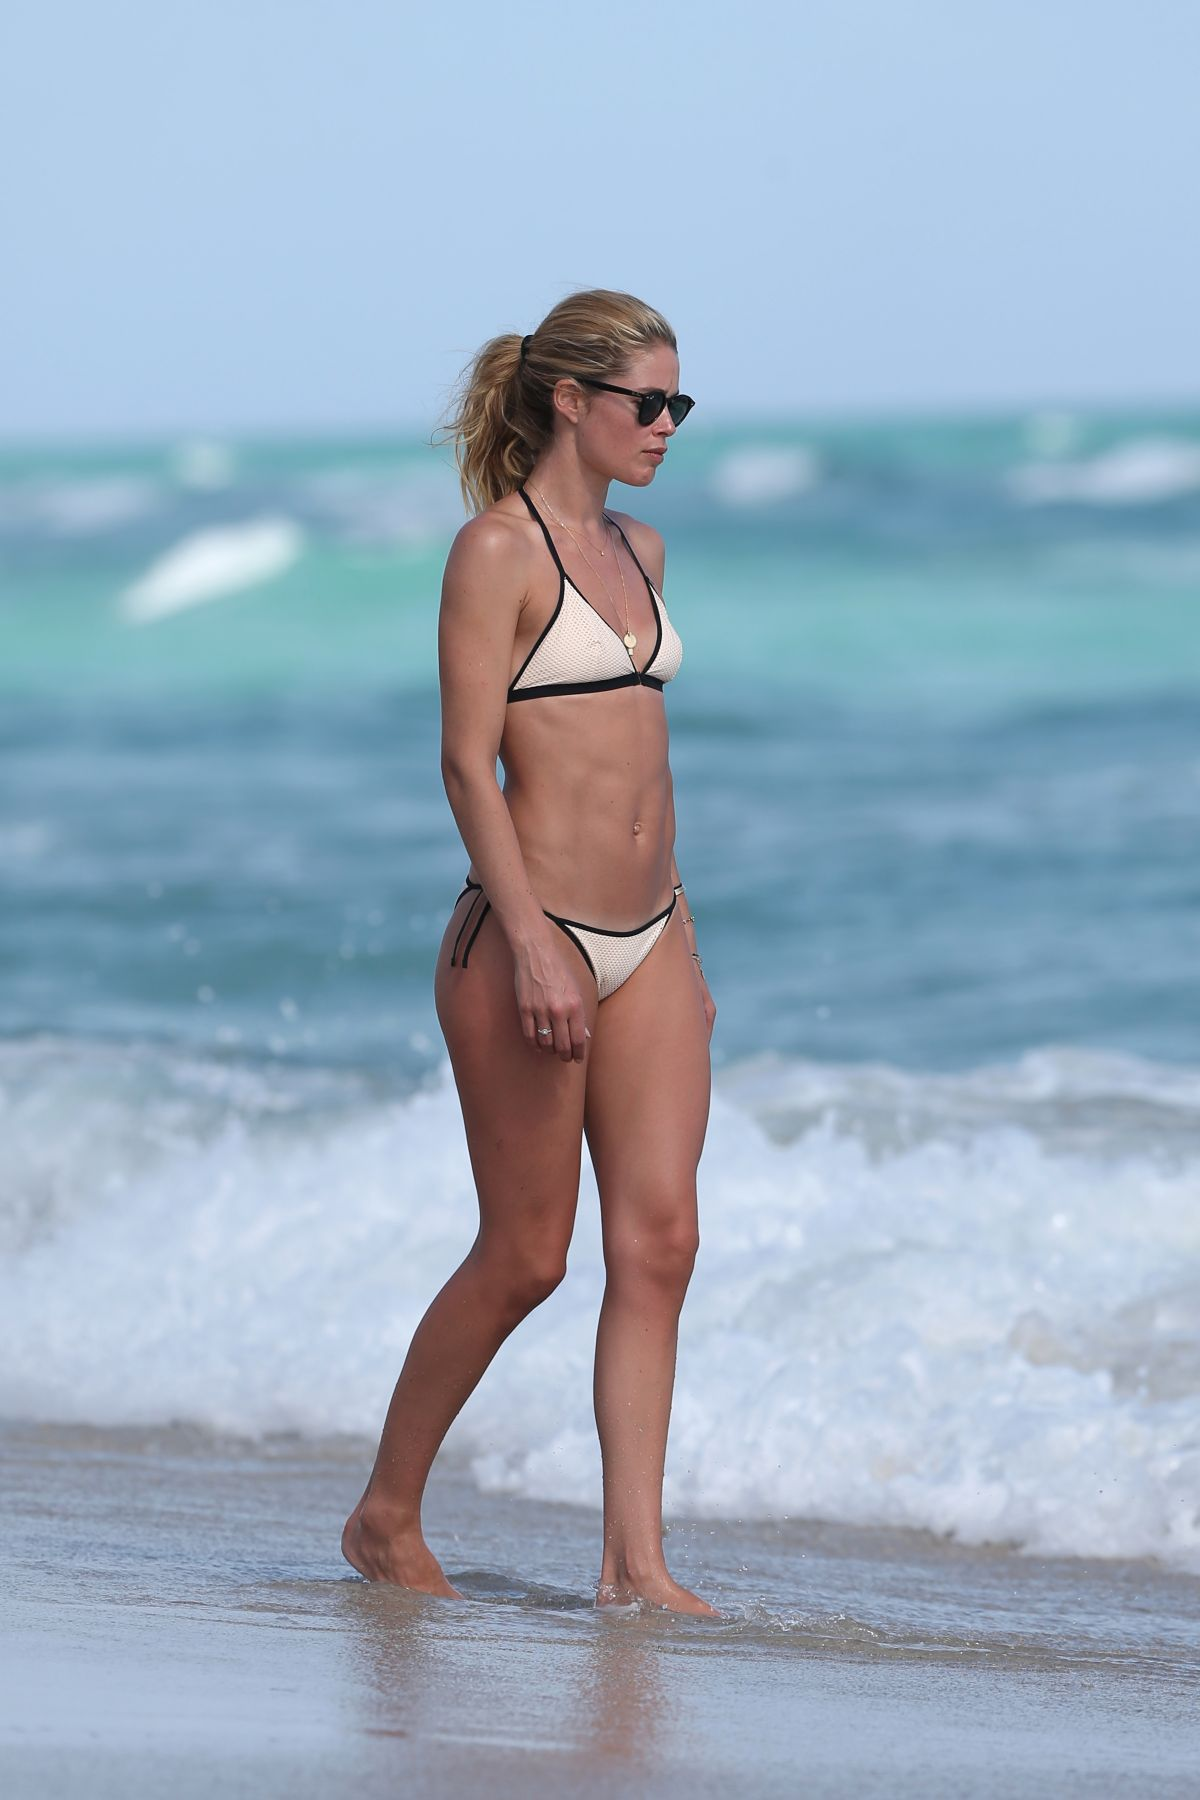 ed7221dc0cd60 DOUTZEN KROES in Bikini on the Beach in Miami 31 12 2016 - HawtCelebs